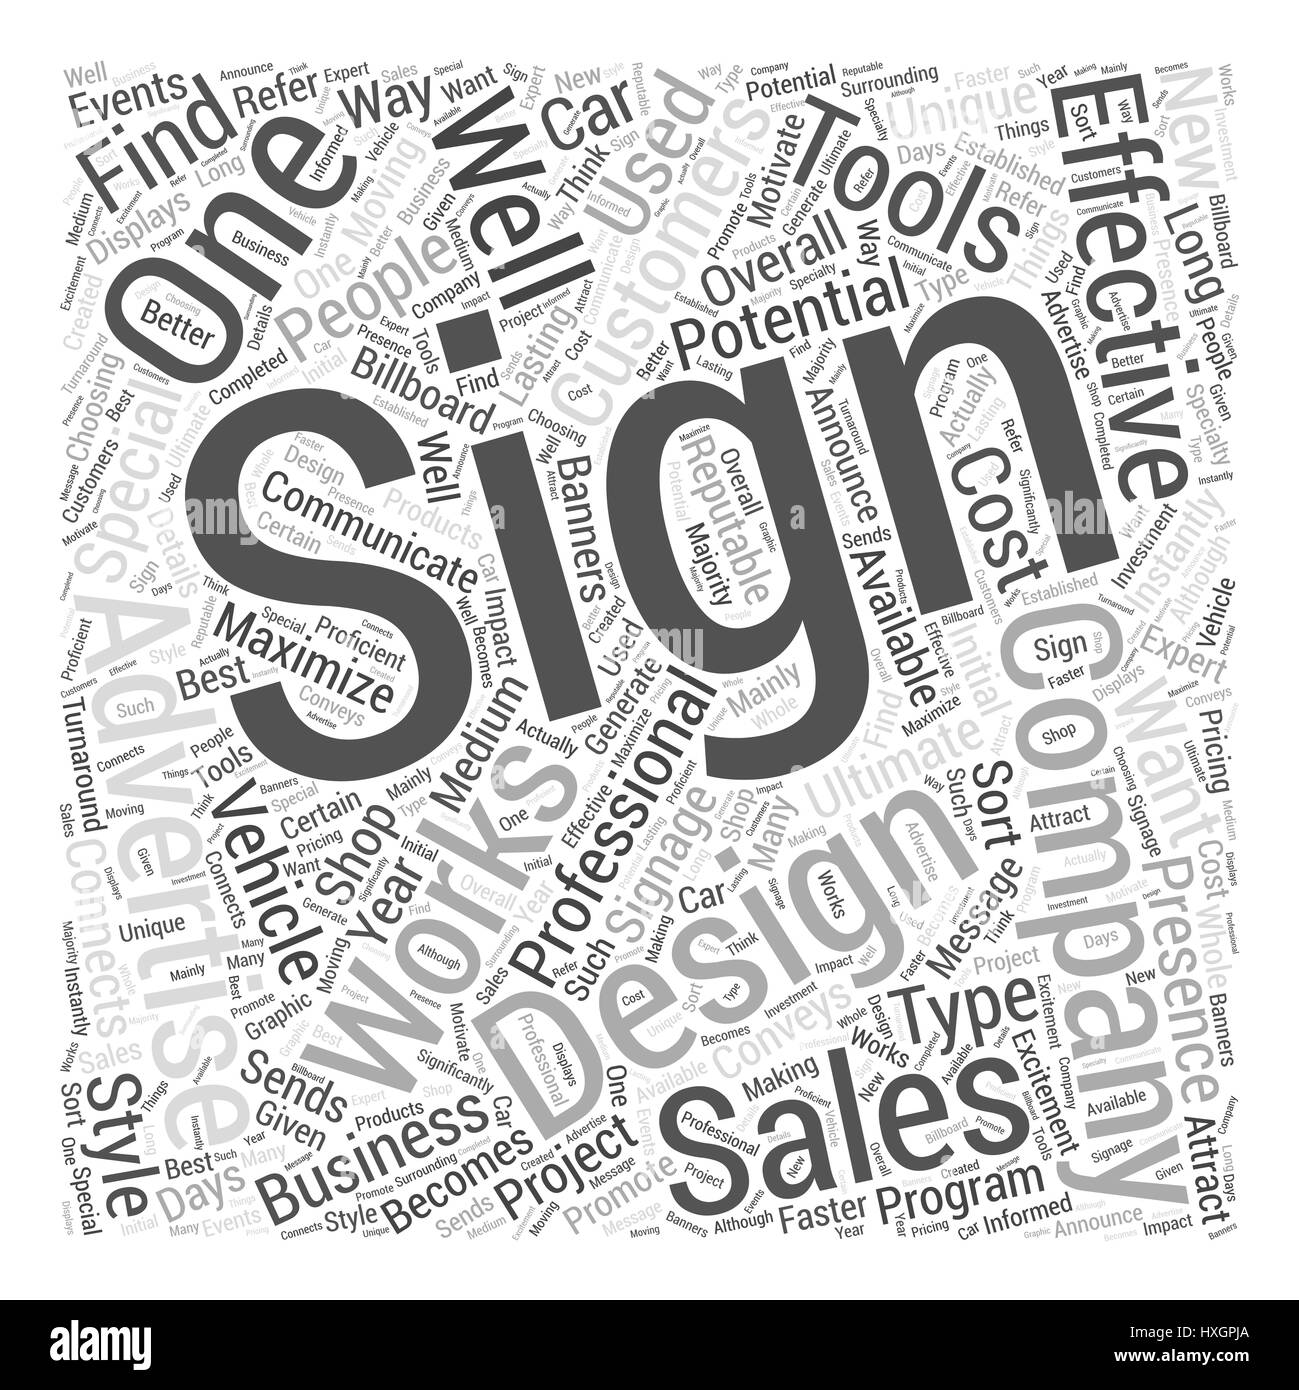 Signs Word Cloud Concept - Stock Image